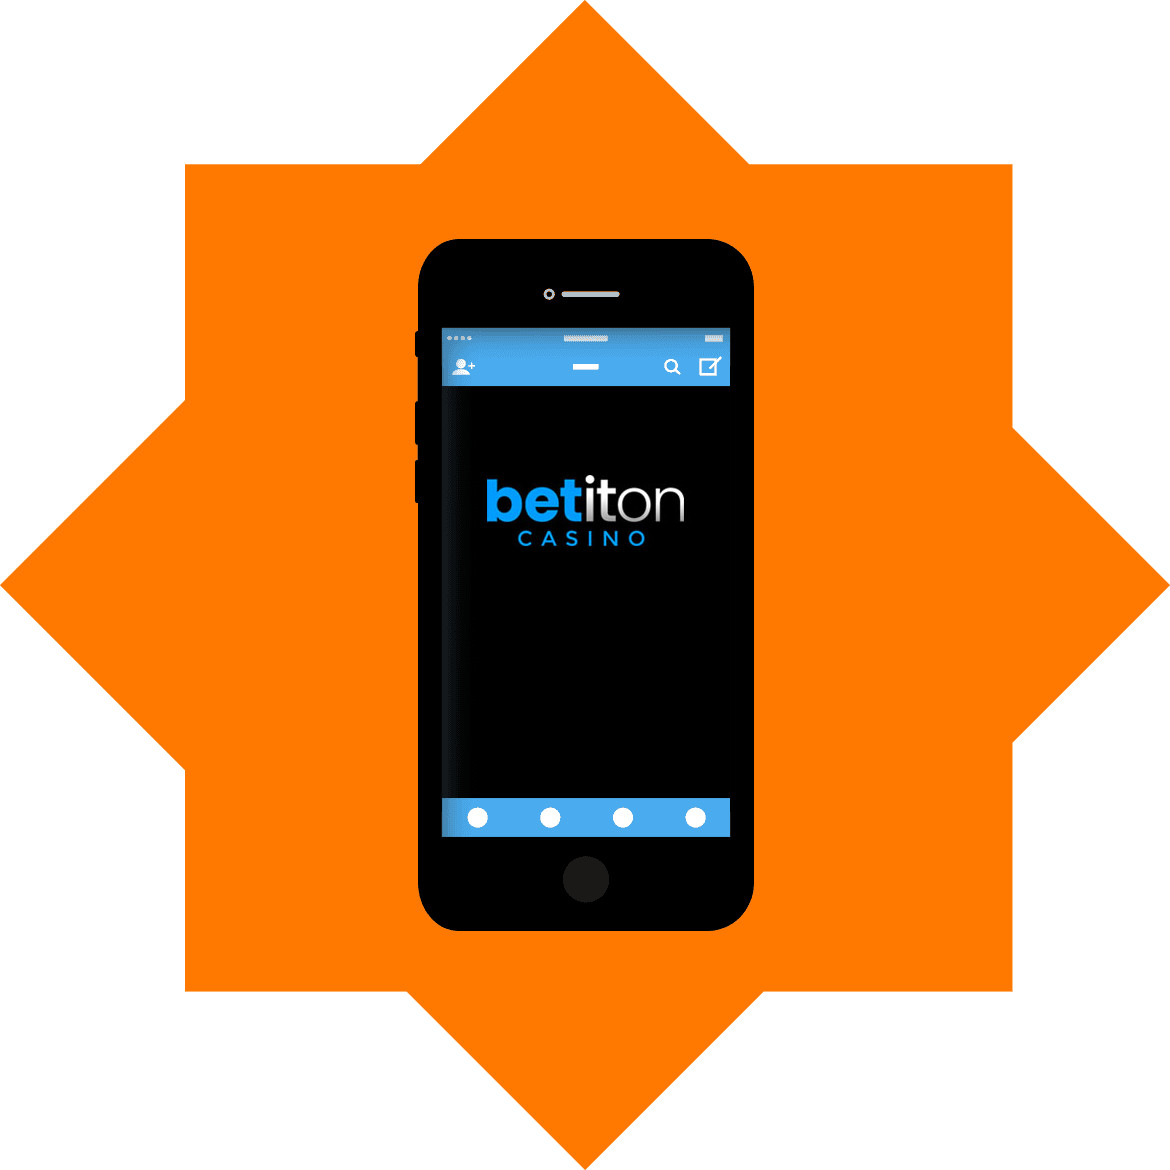 Betiton - Mobile friendly